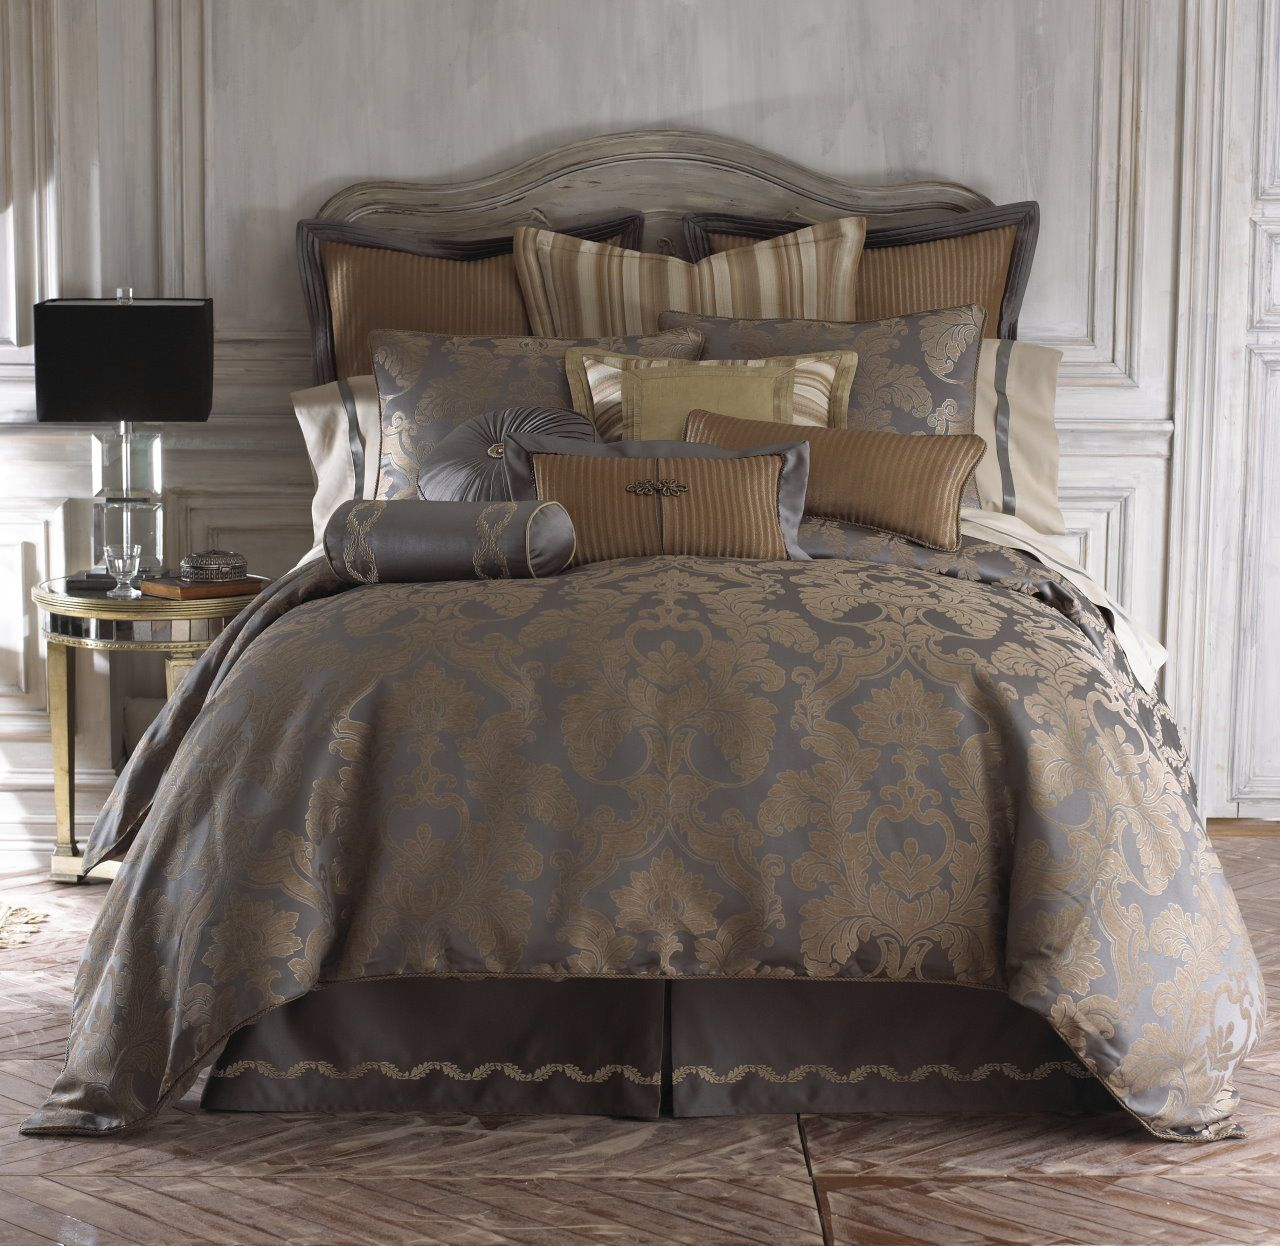 The Home Decorating Company Luxury Bedding Solutions Walton King Comforter 24999 Http